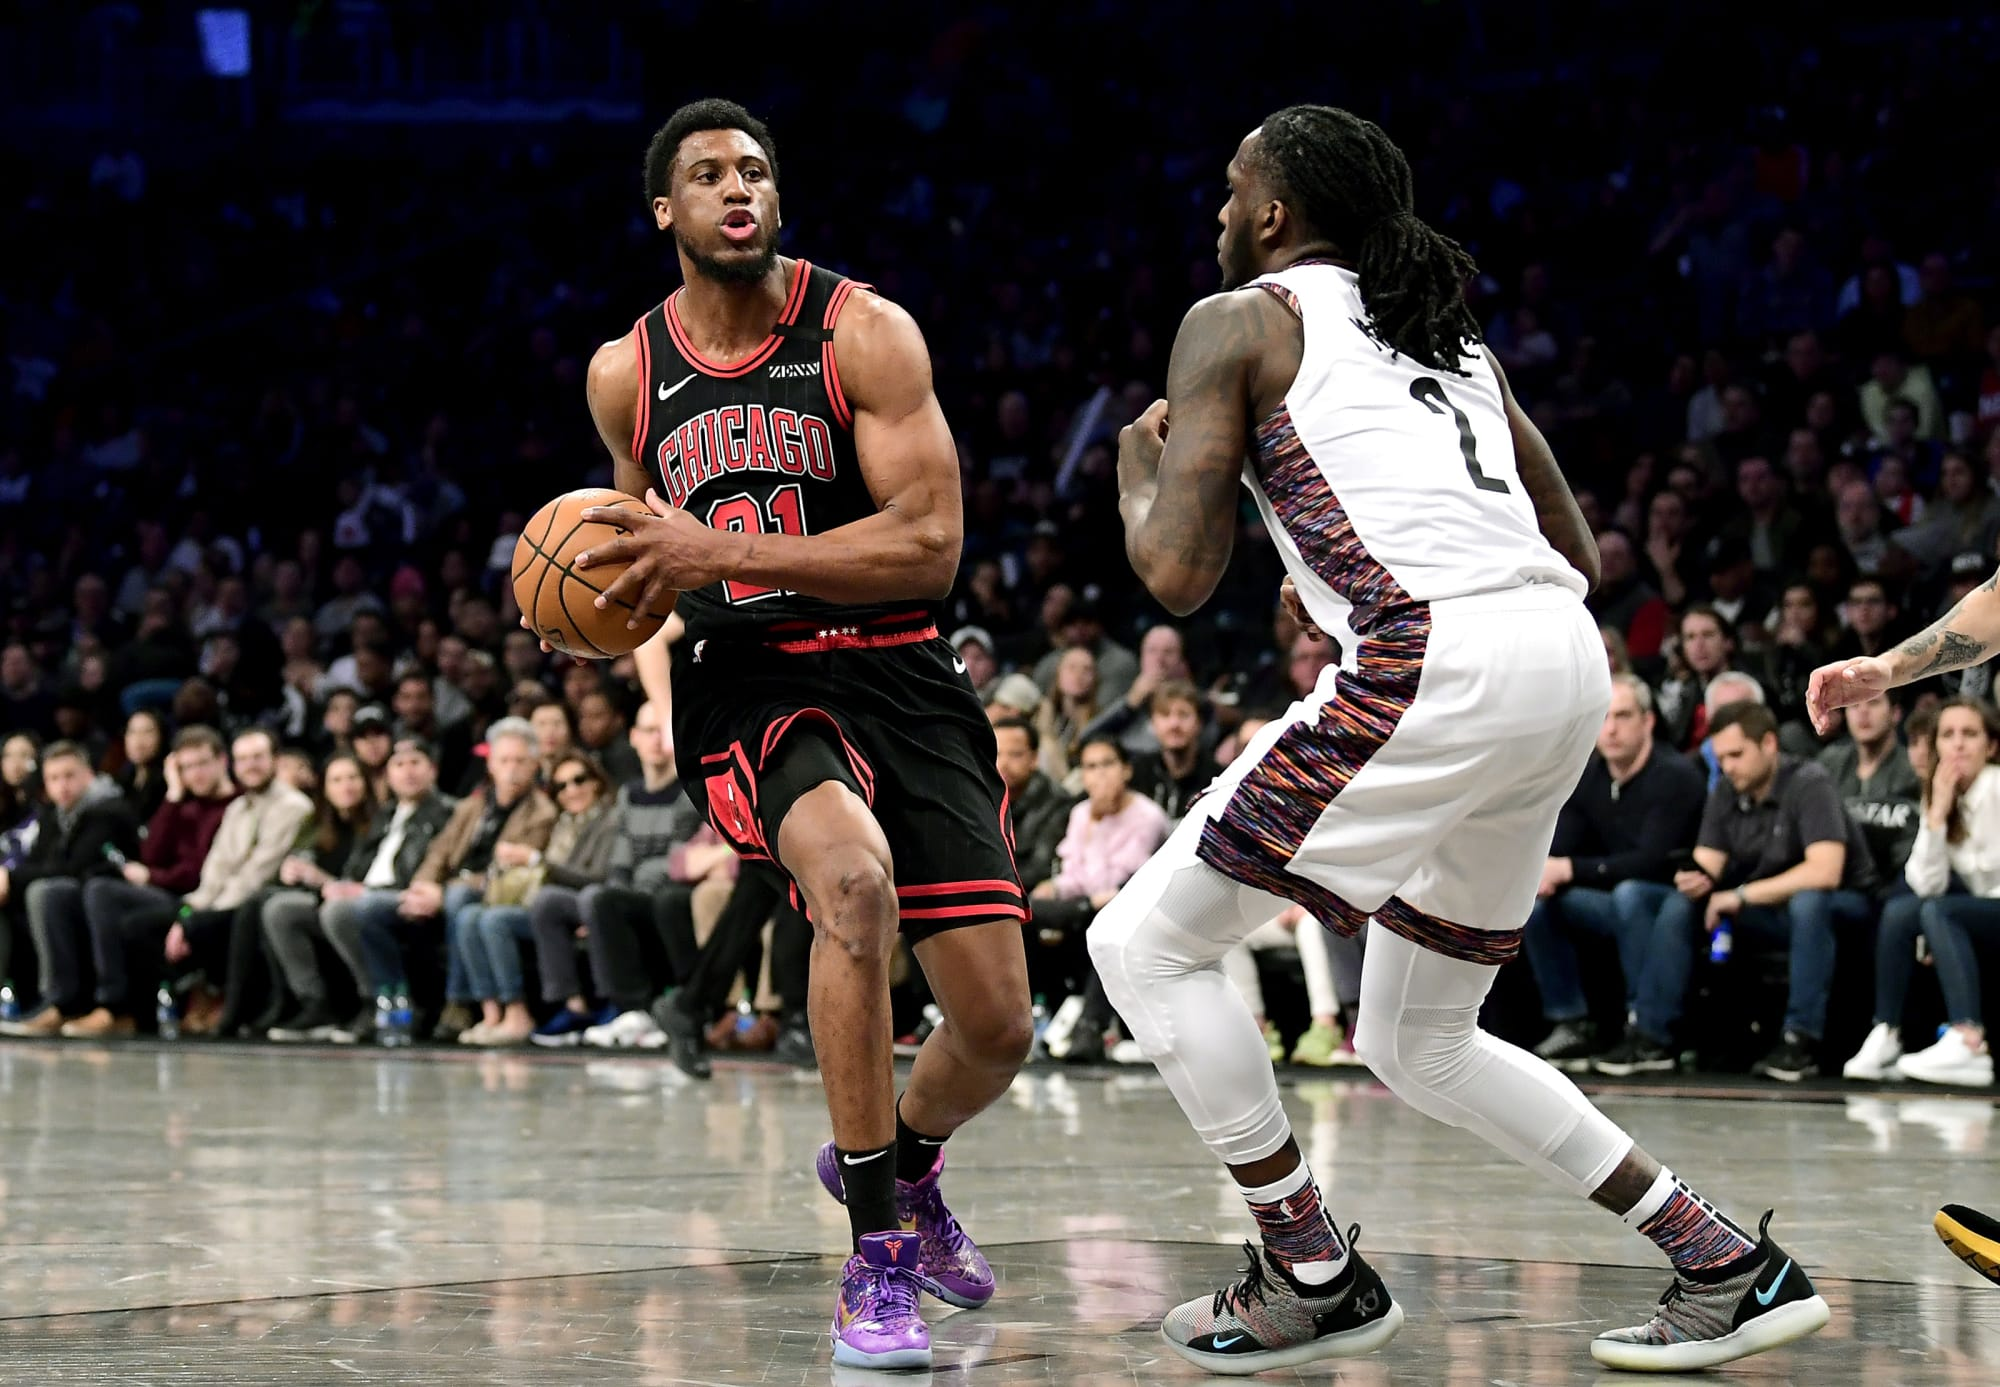 This Raptors-Bulls trade will bring Thad Young to Toronto